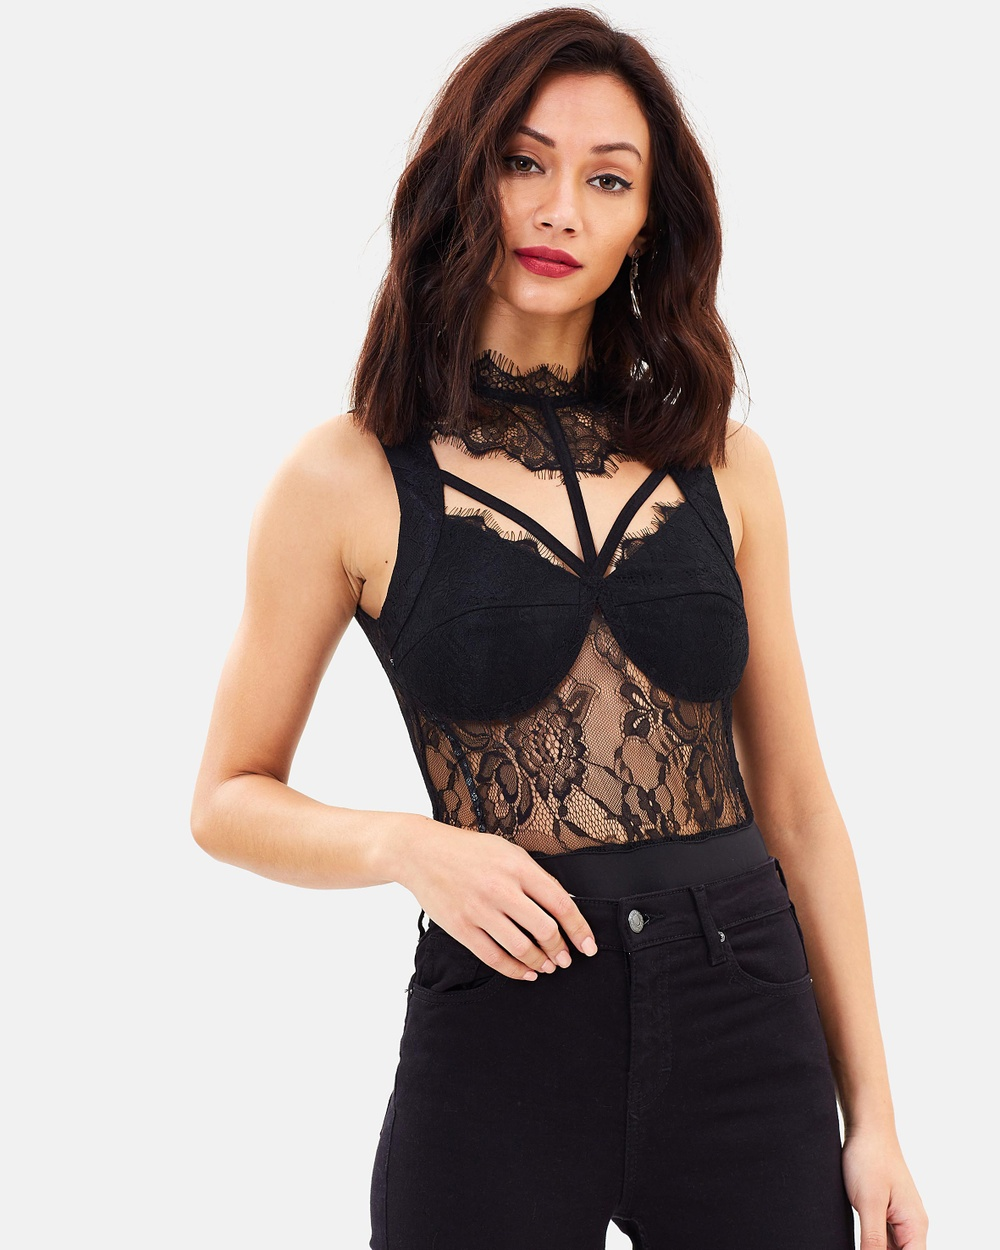 Missguided Sheer Lace High Neck Bodysuit Tops Black Sheer Lace High Neck Bodysuit